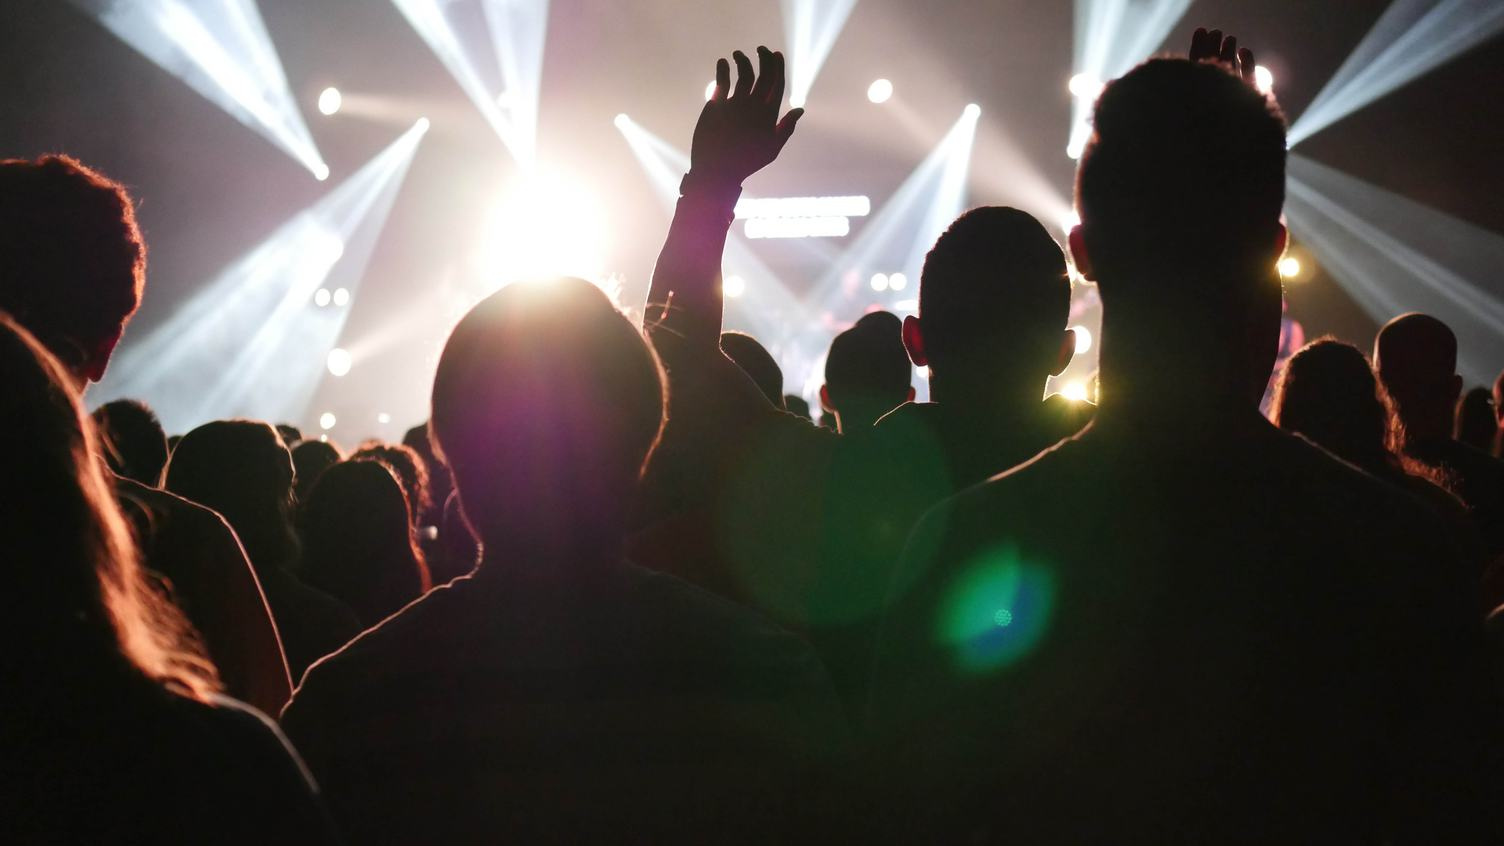 Rear View of an Audience at a Music Concert